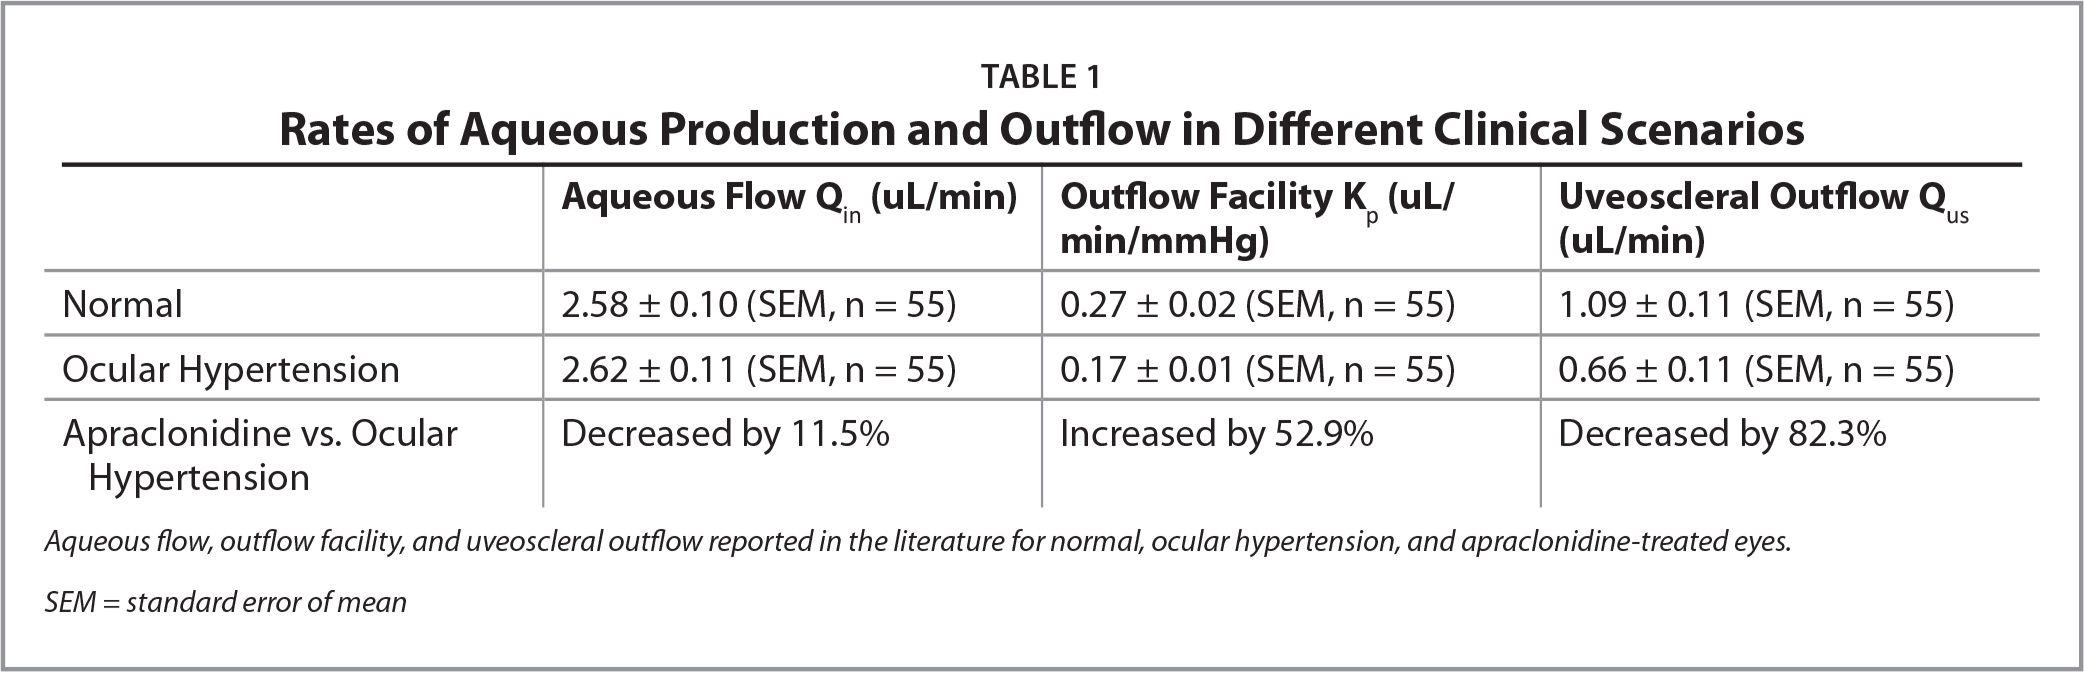 Rates of Aqueous Production and Outflow in Different Clinical Scenarios